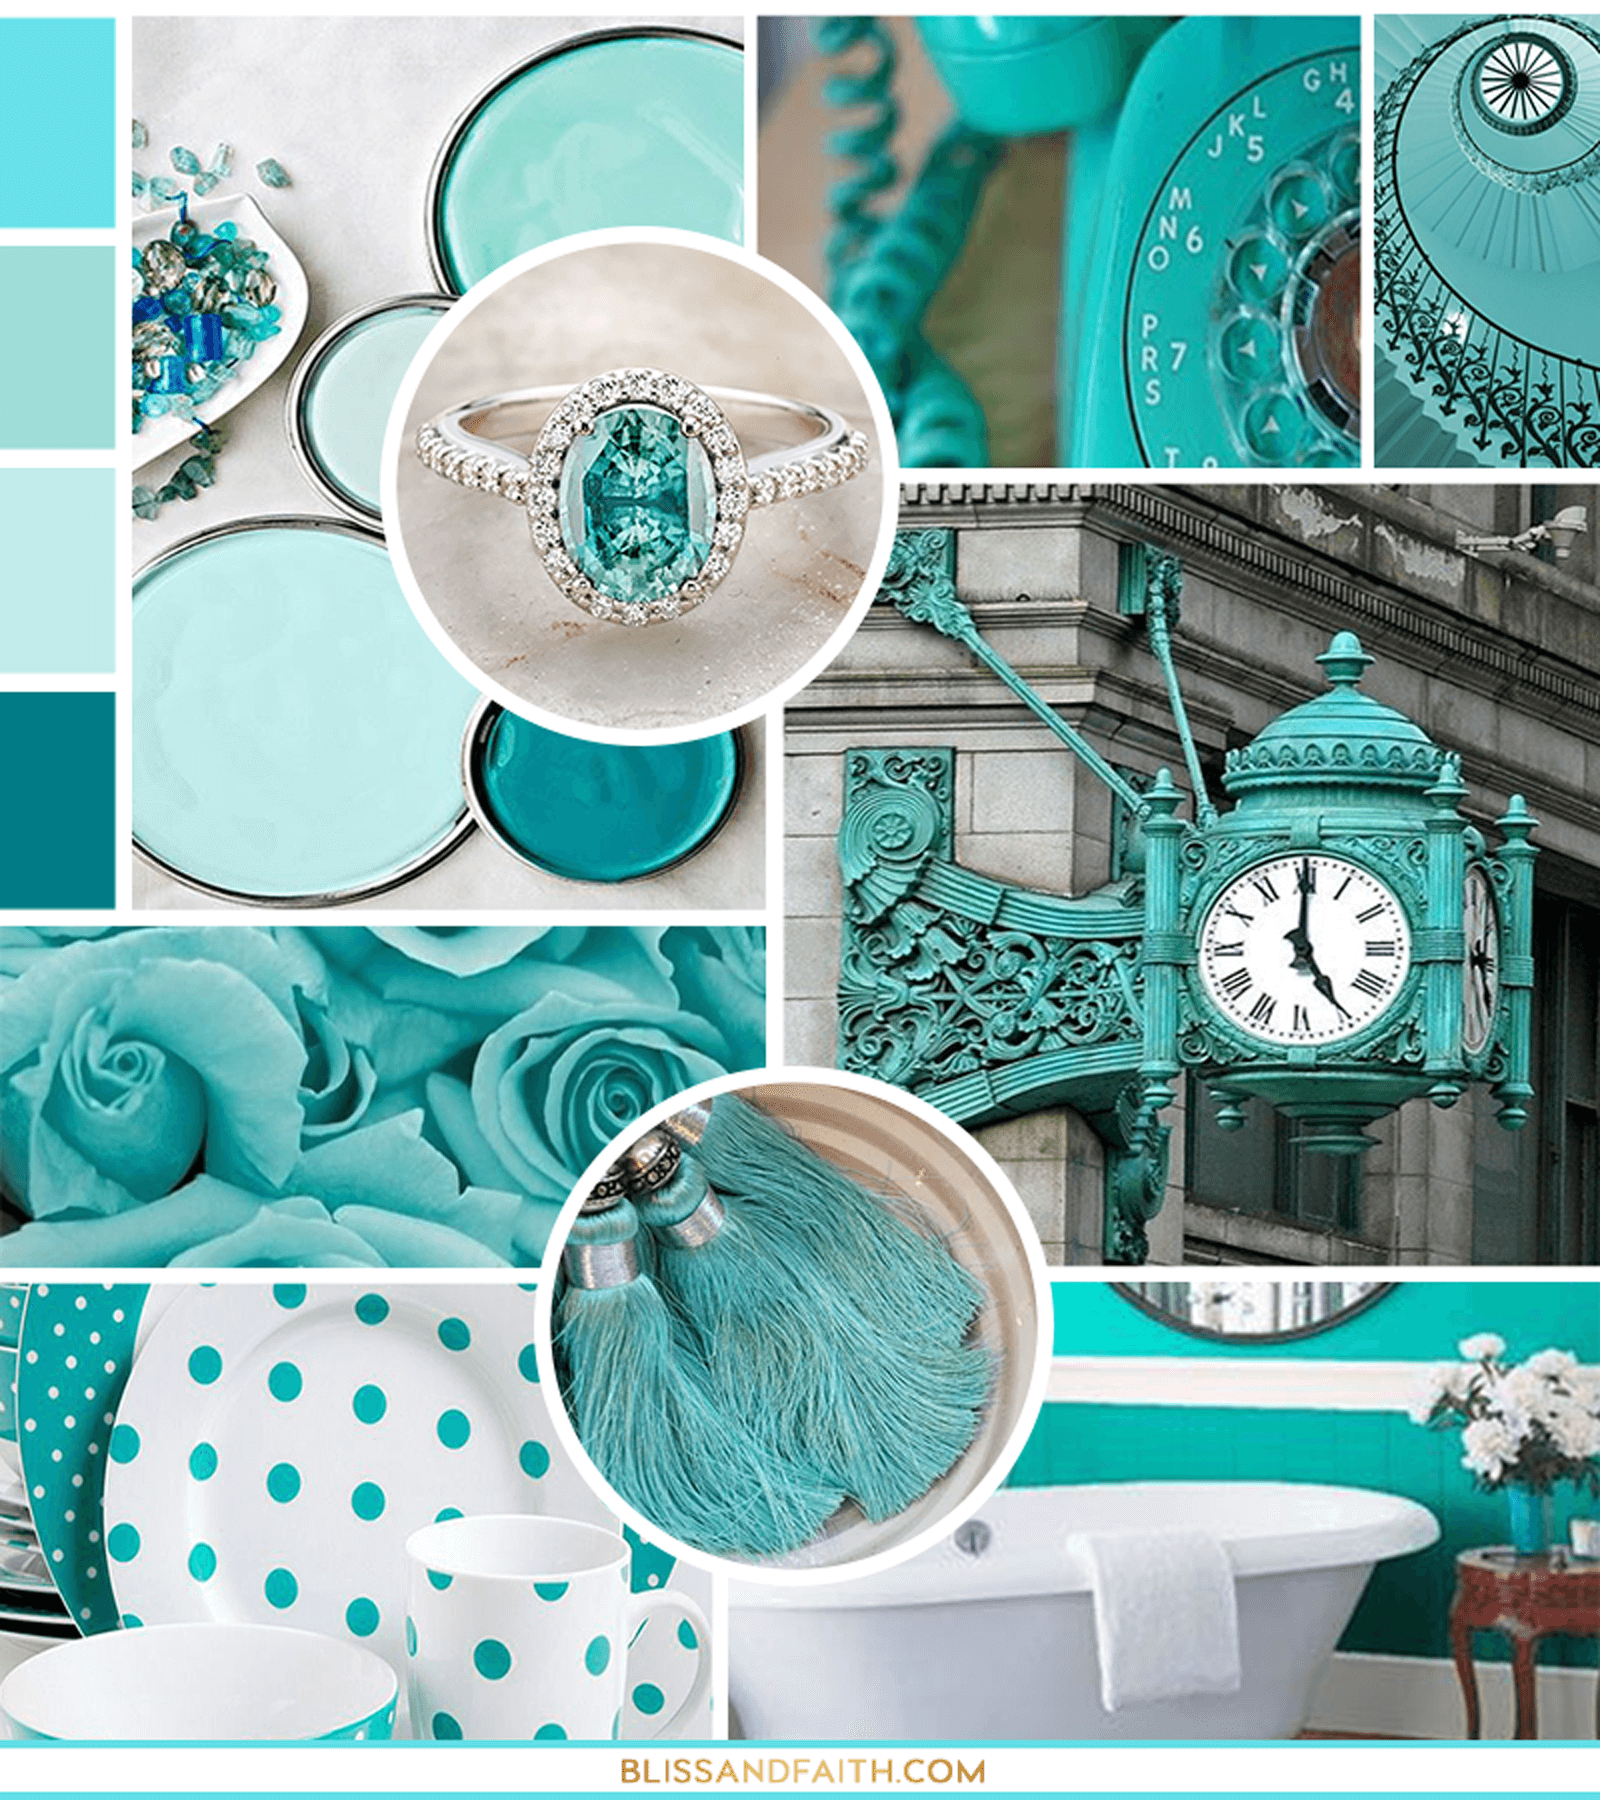 For the Love of Turquoise | Mood Board | BlissandFaith.com